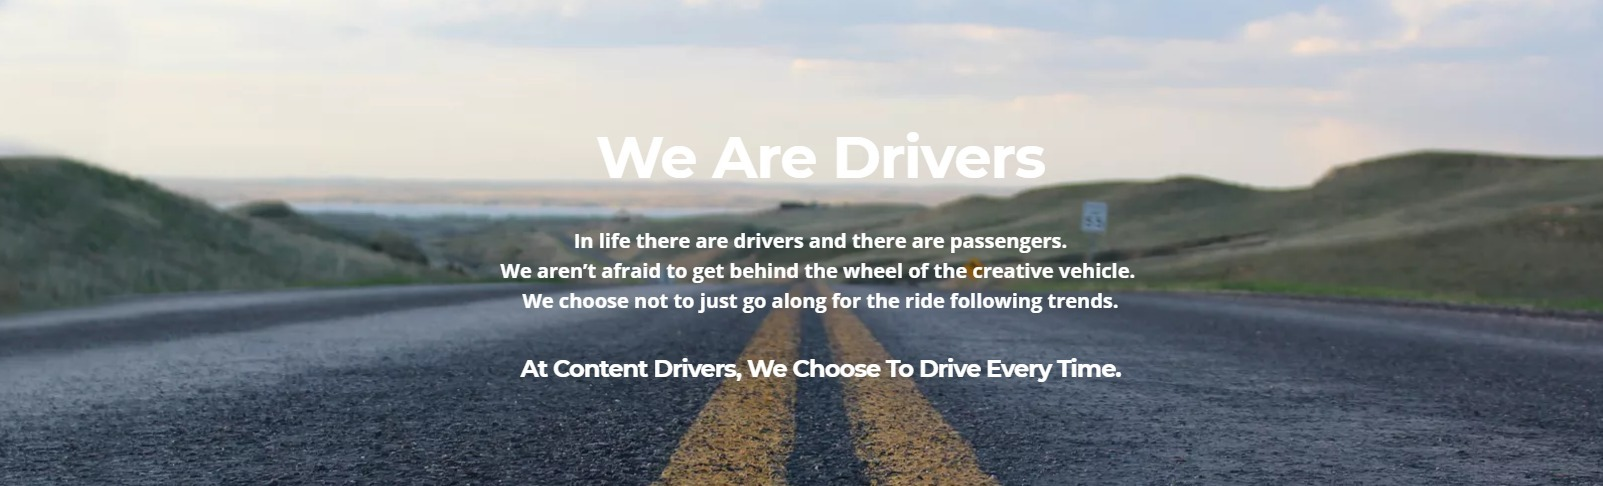 ContentDrivers (@contentdrivers) Cover Image